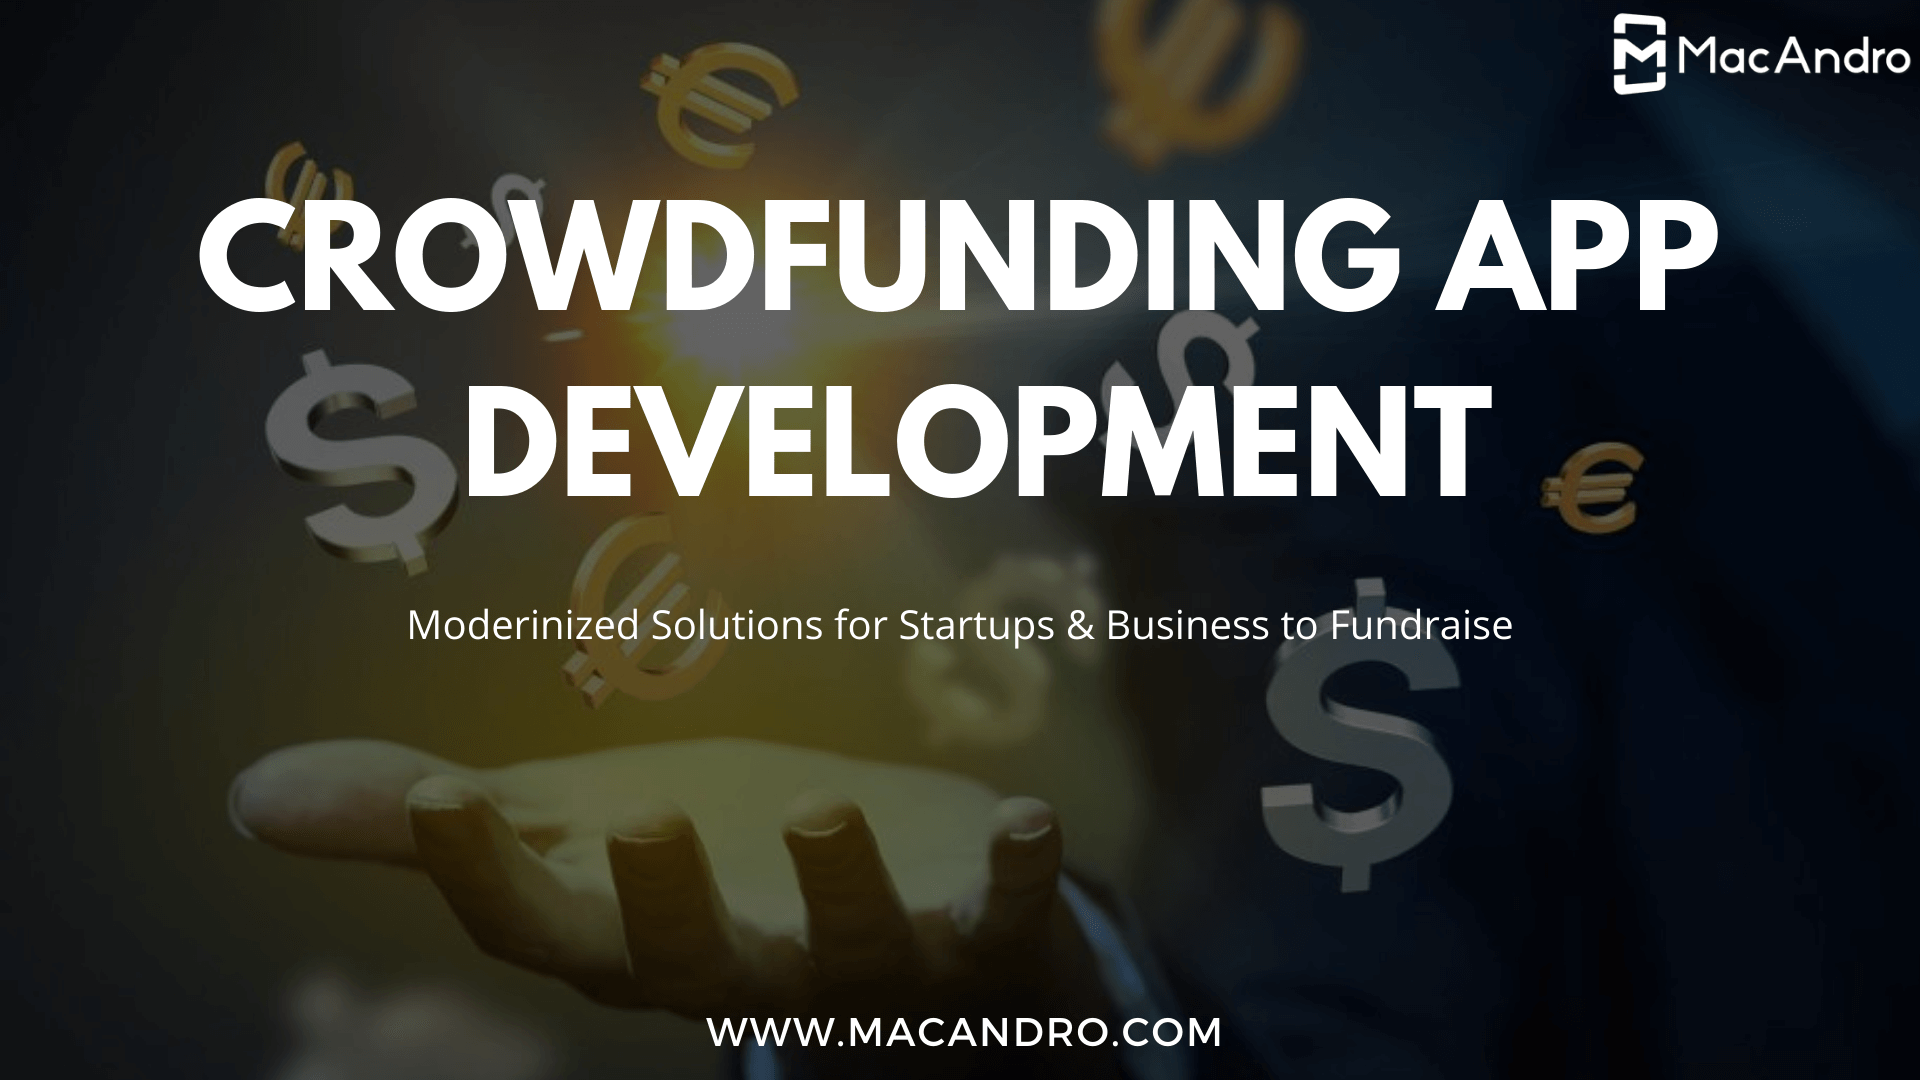 Crowdfunding Apps - A Modern Solution For Startups and Enterprise To Embrace Fundraising